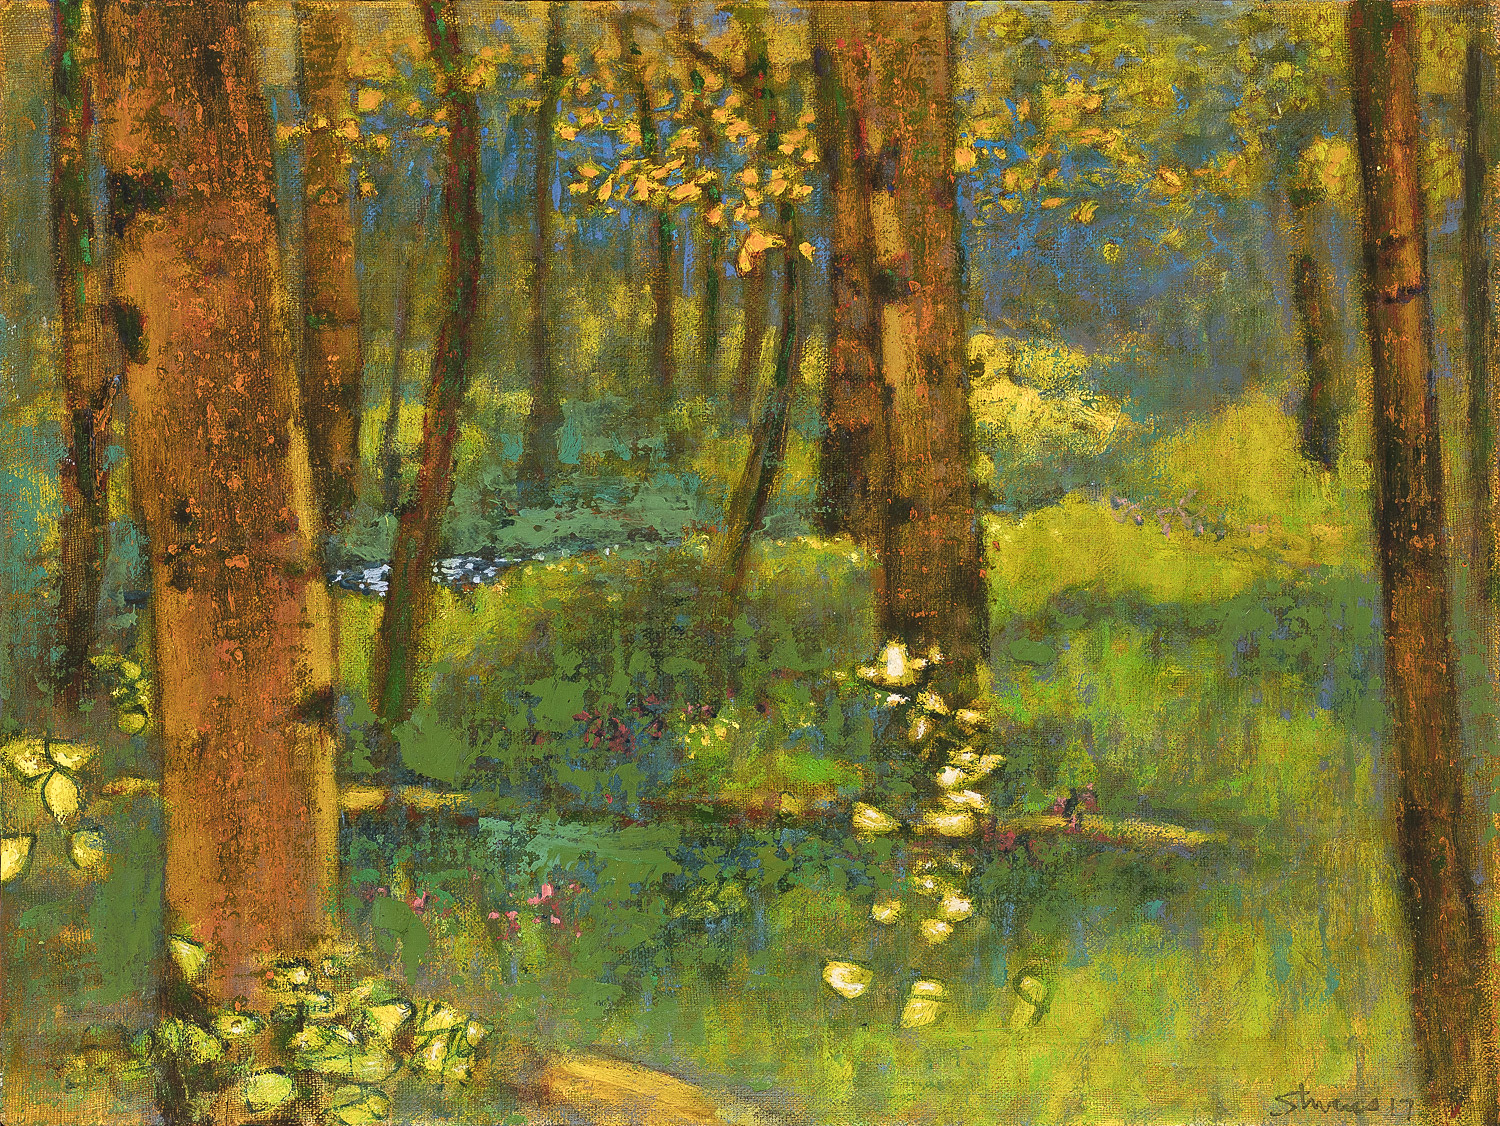 Deep Woods Creek  | oil on linen | 12 x 16"